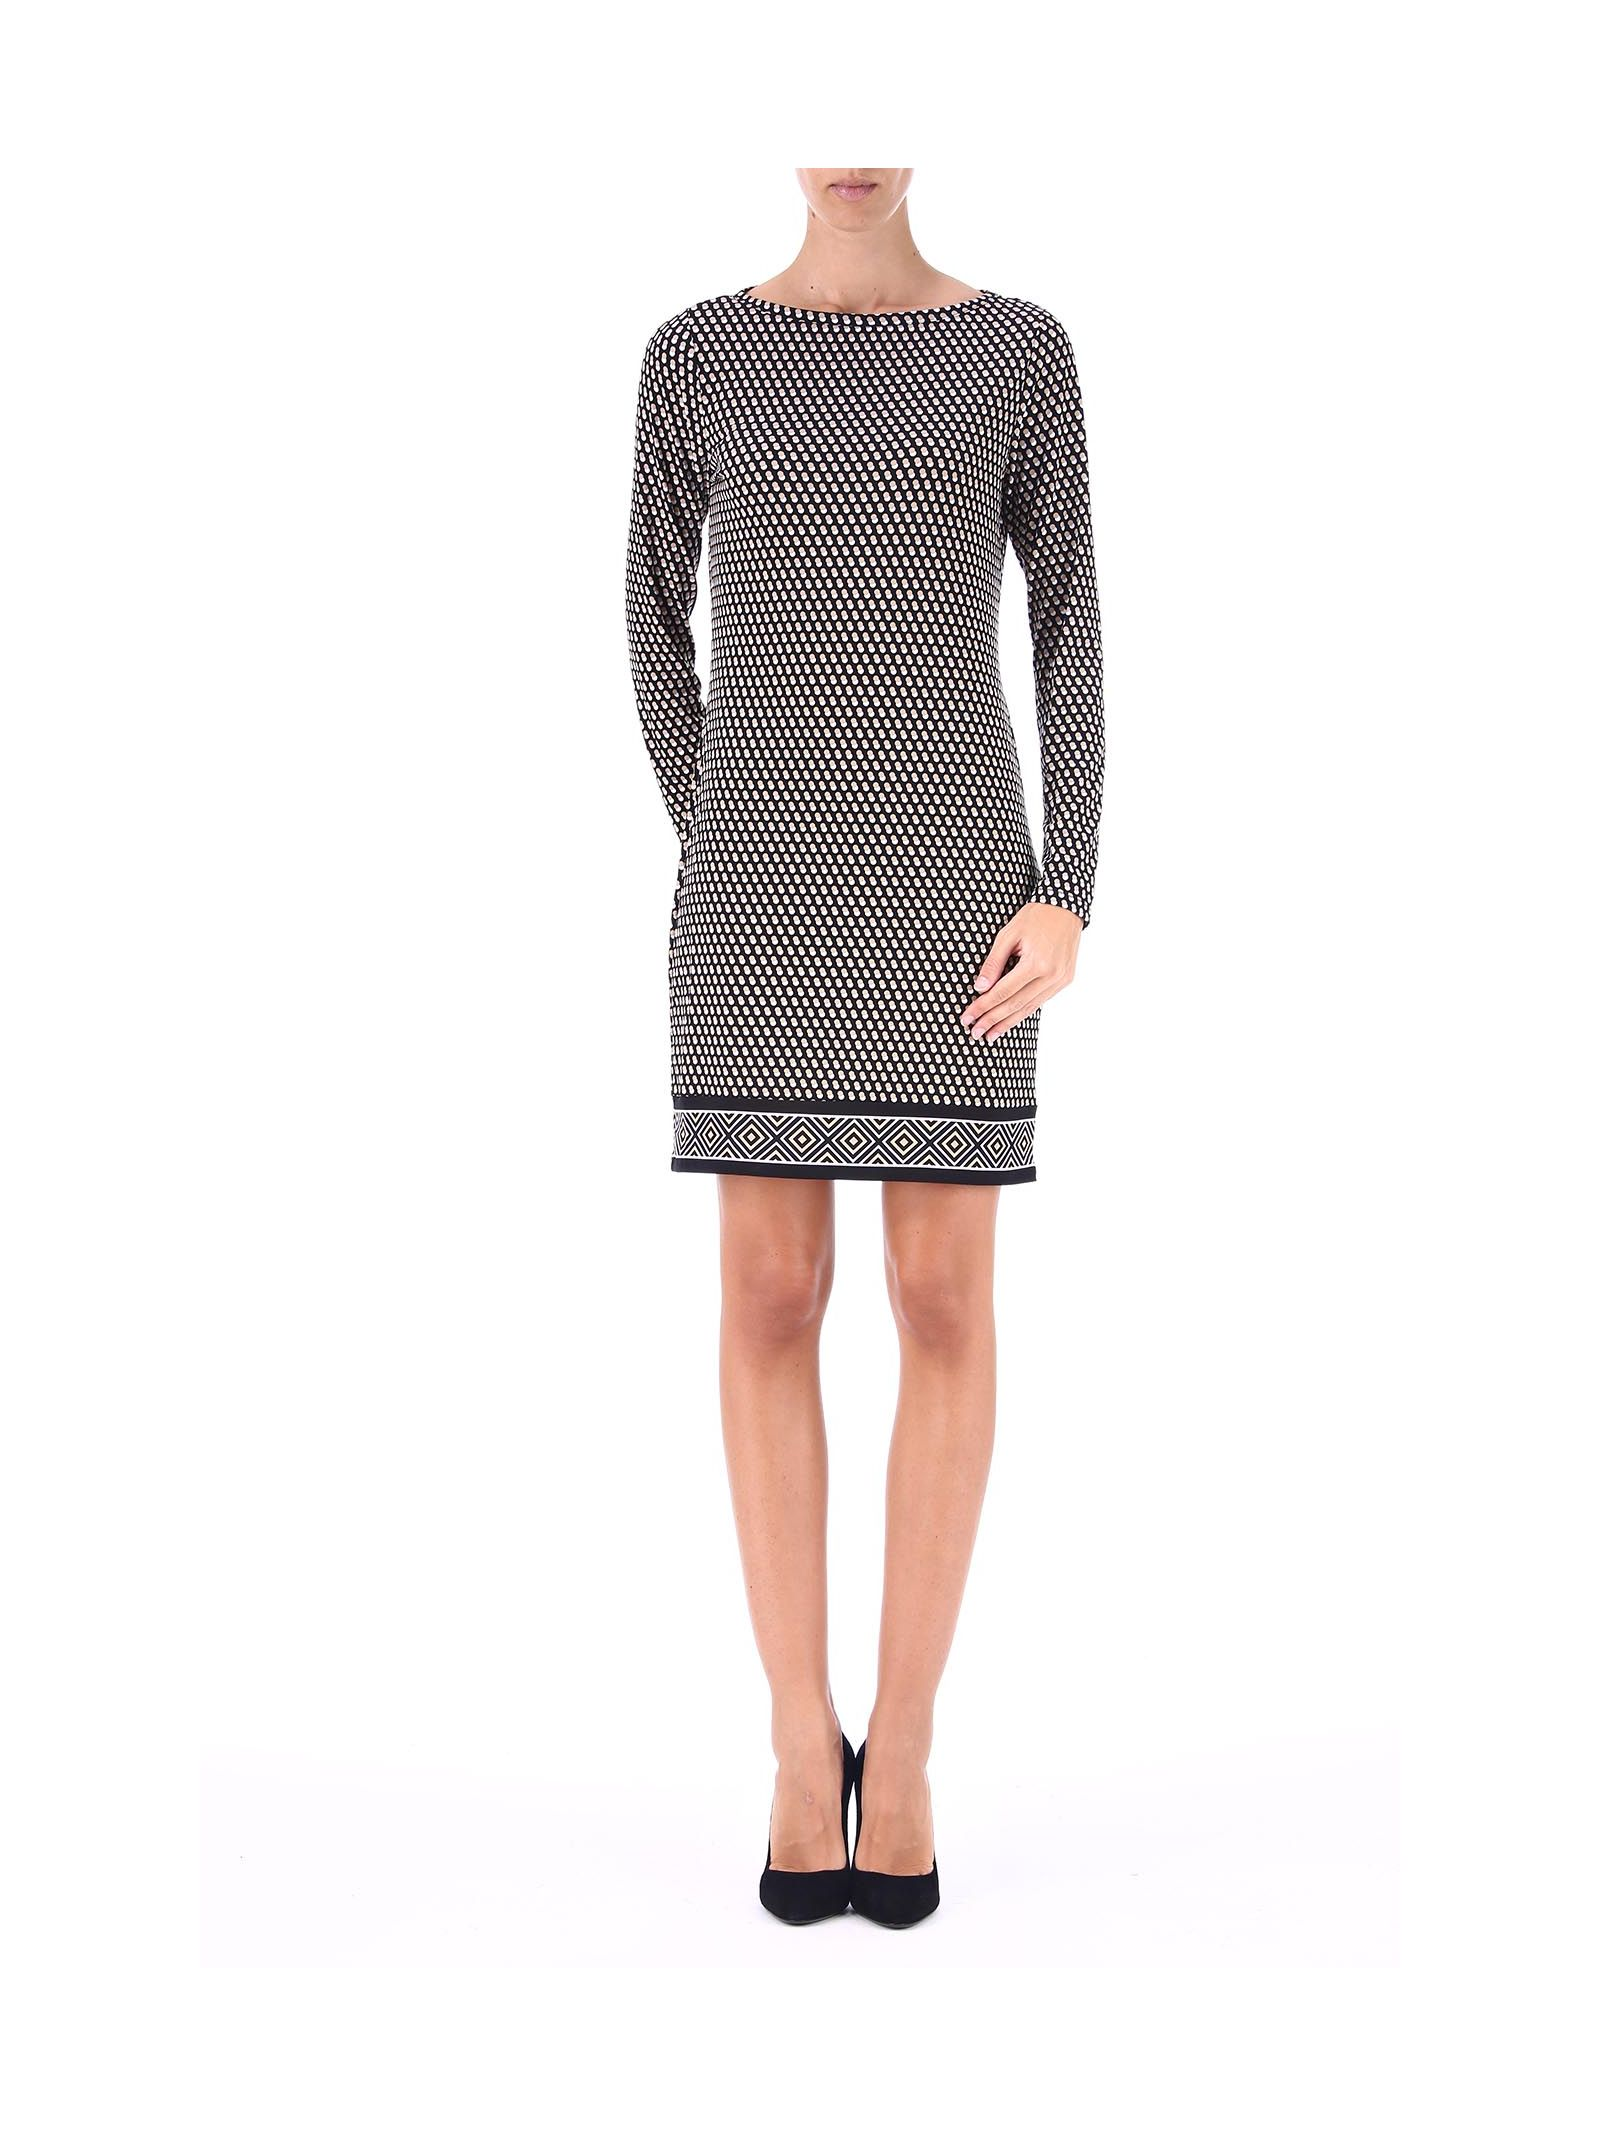 Michael Kors Alston Dress